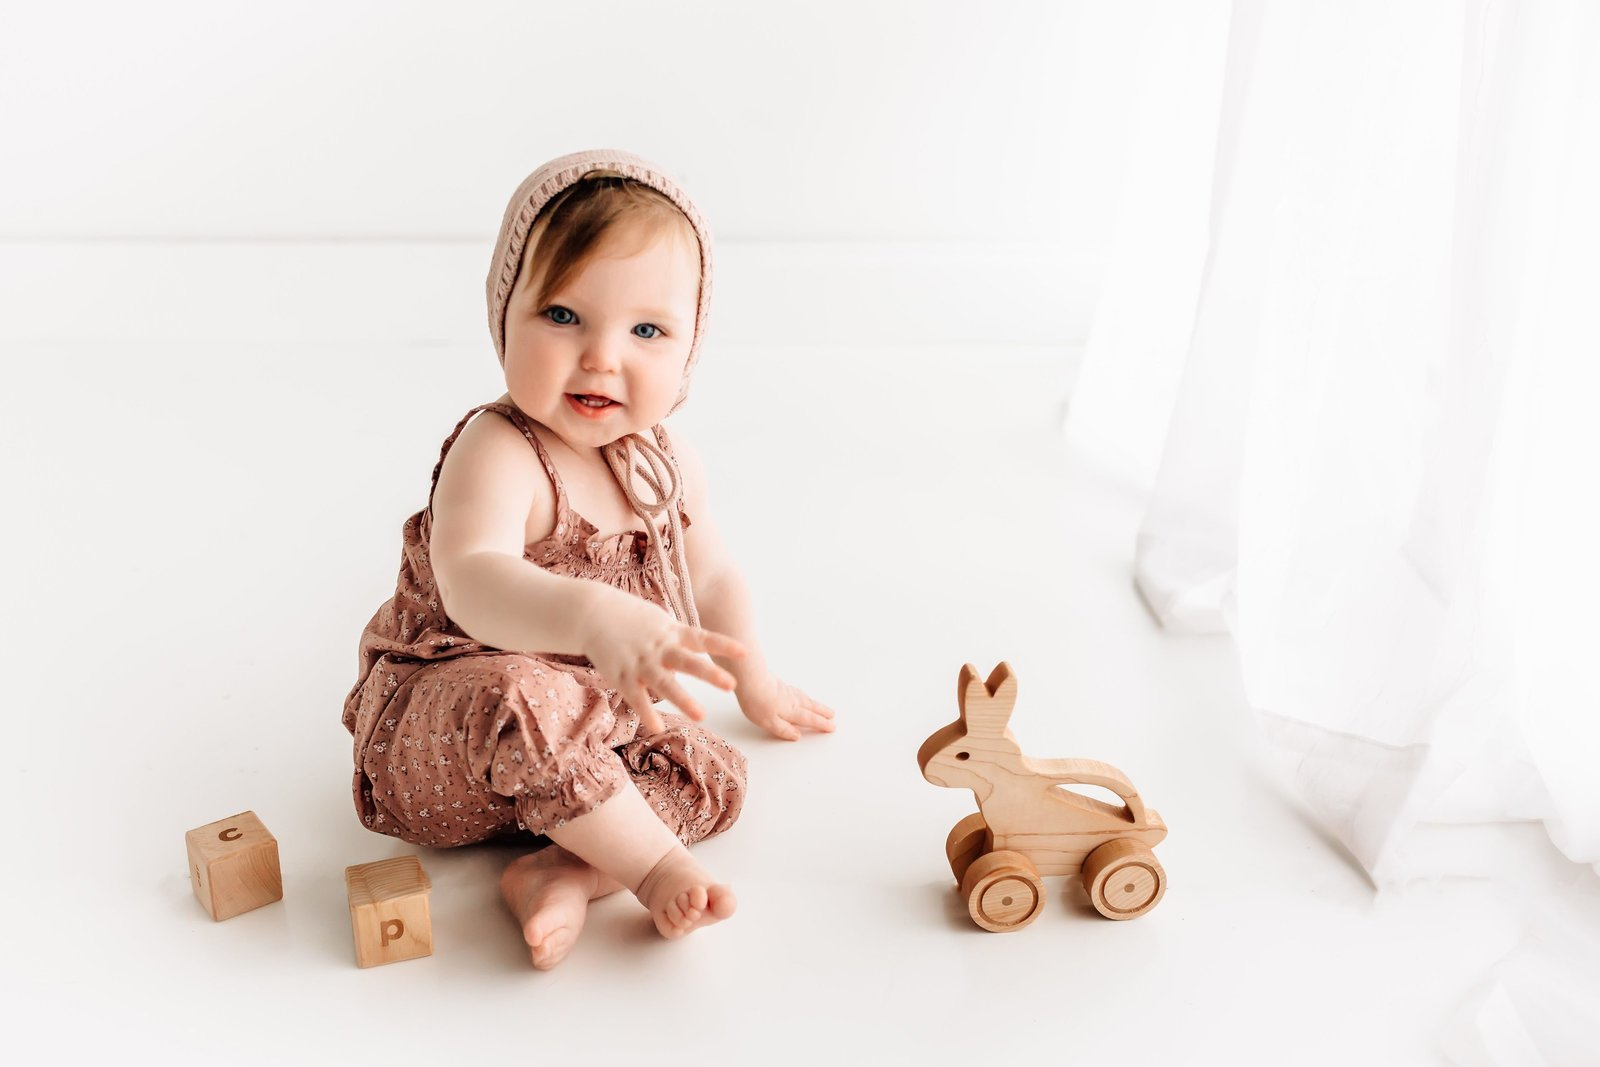 St_Louis_Baby_Photographer_Kelly_Laramore_Photography_43